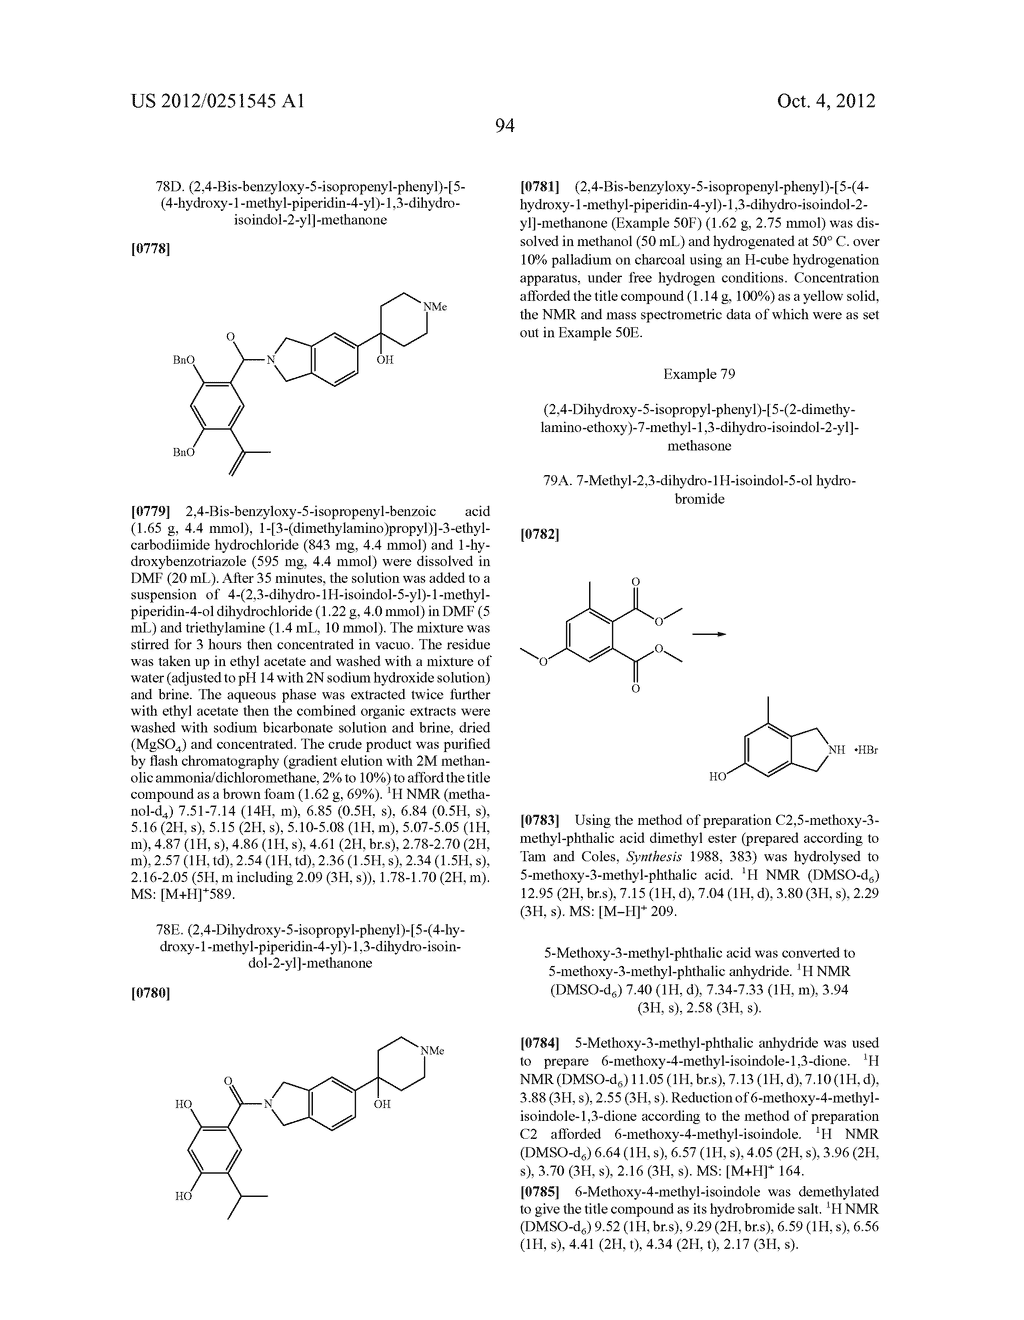 Therapeutic Combinations Of Hydroxybenzamide Derivatives As Inhibitors Of     HSP90 - diagram, schematic, and image 95